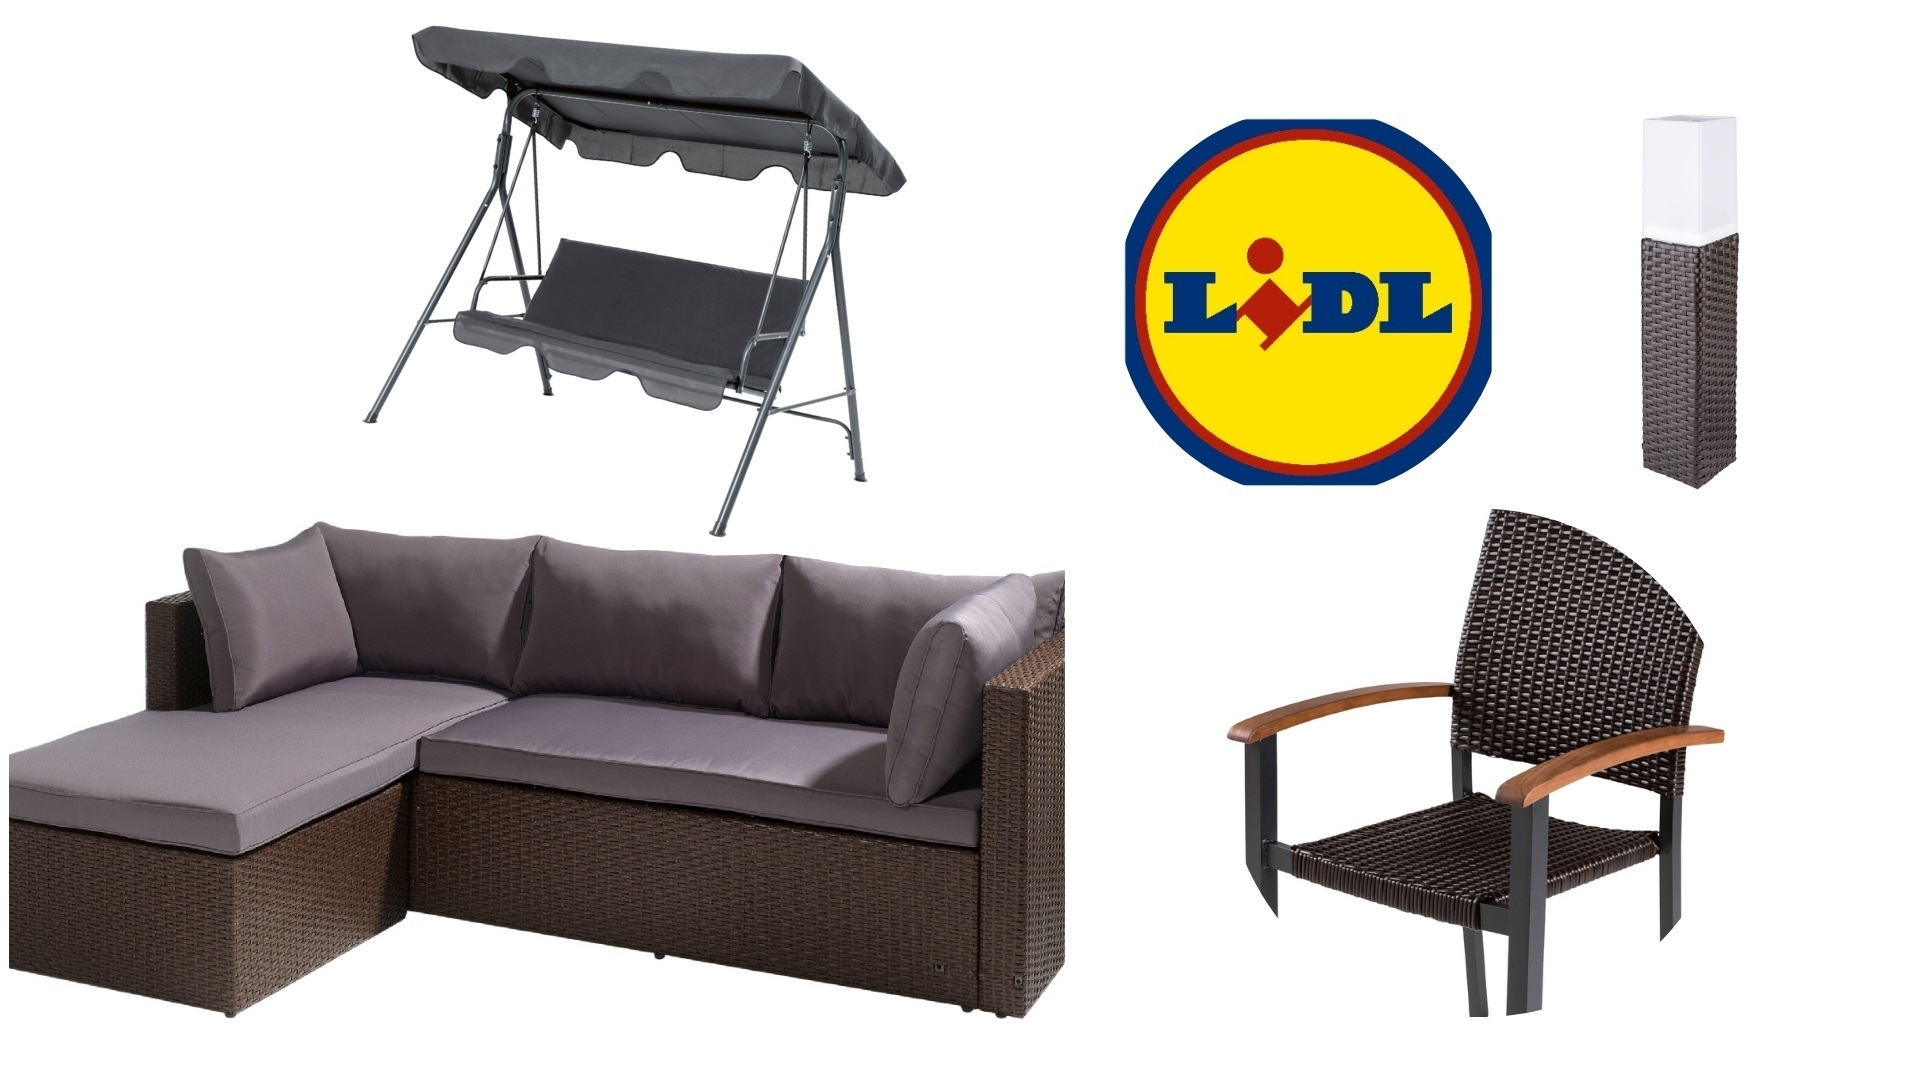 Lidl Ni Launch Sensational Outdoor Furniture Range Just In Time For Summer Newry Times Newry Times